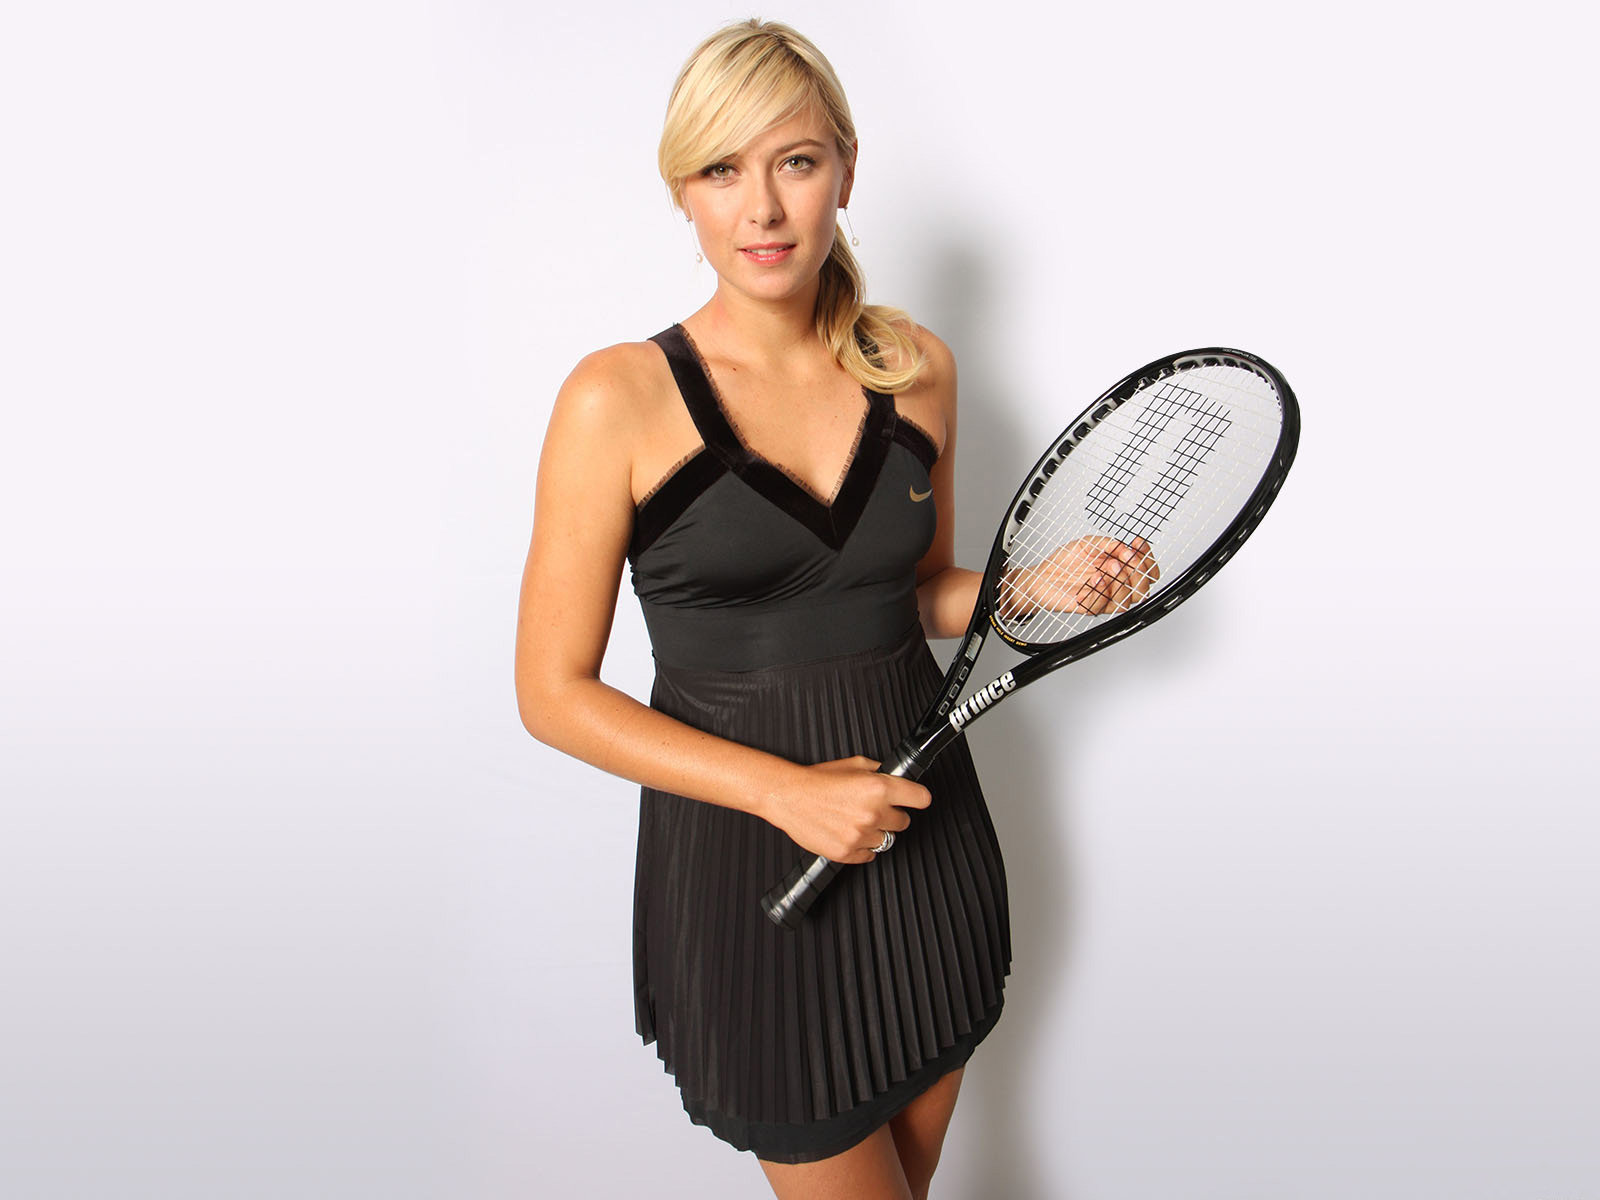 Maria Sharapova No.1 Tennis Player wallpaper